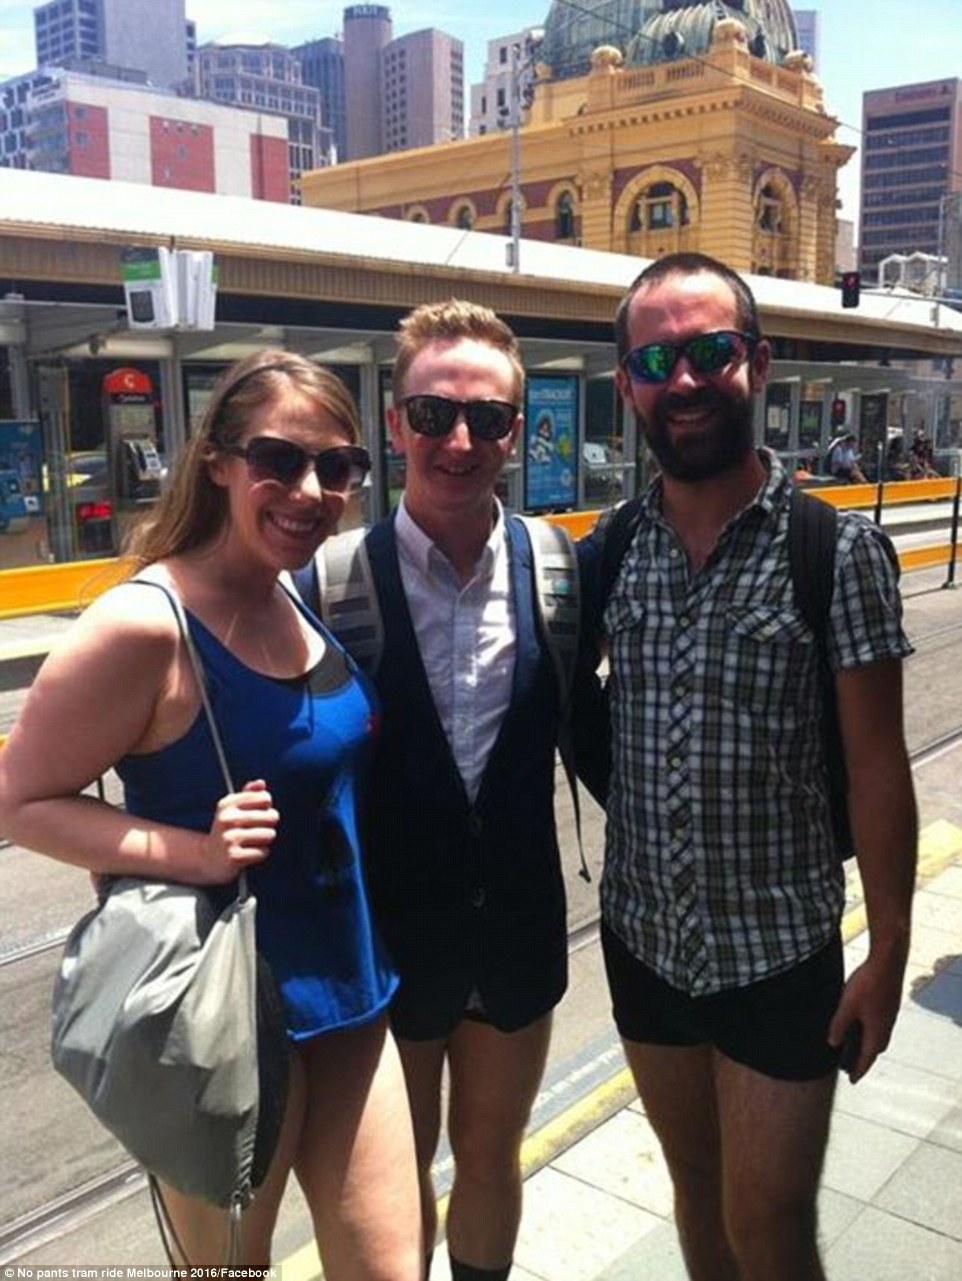 There were only three rules for the event: no pants, shorts or skirts while riding the tram in Melbourne